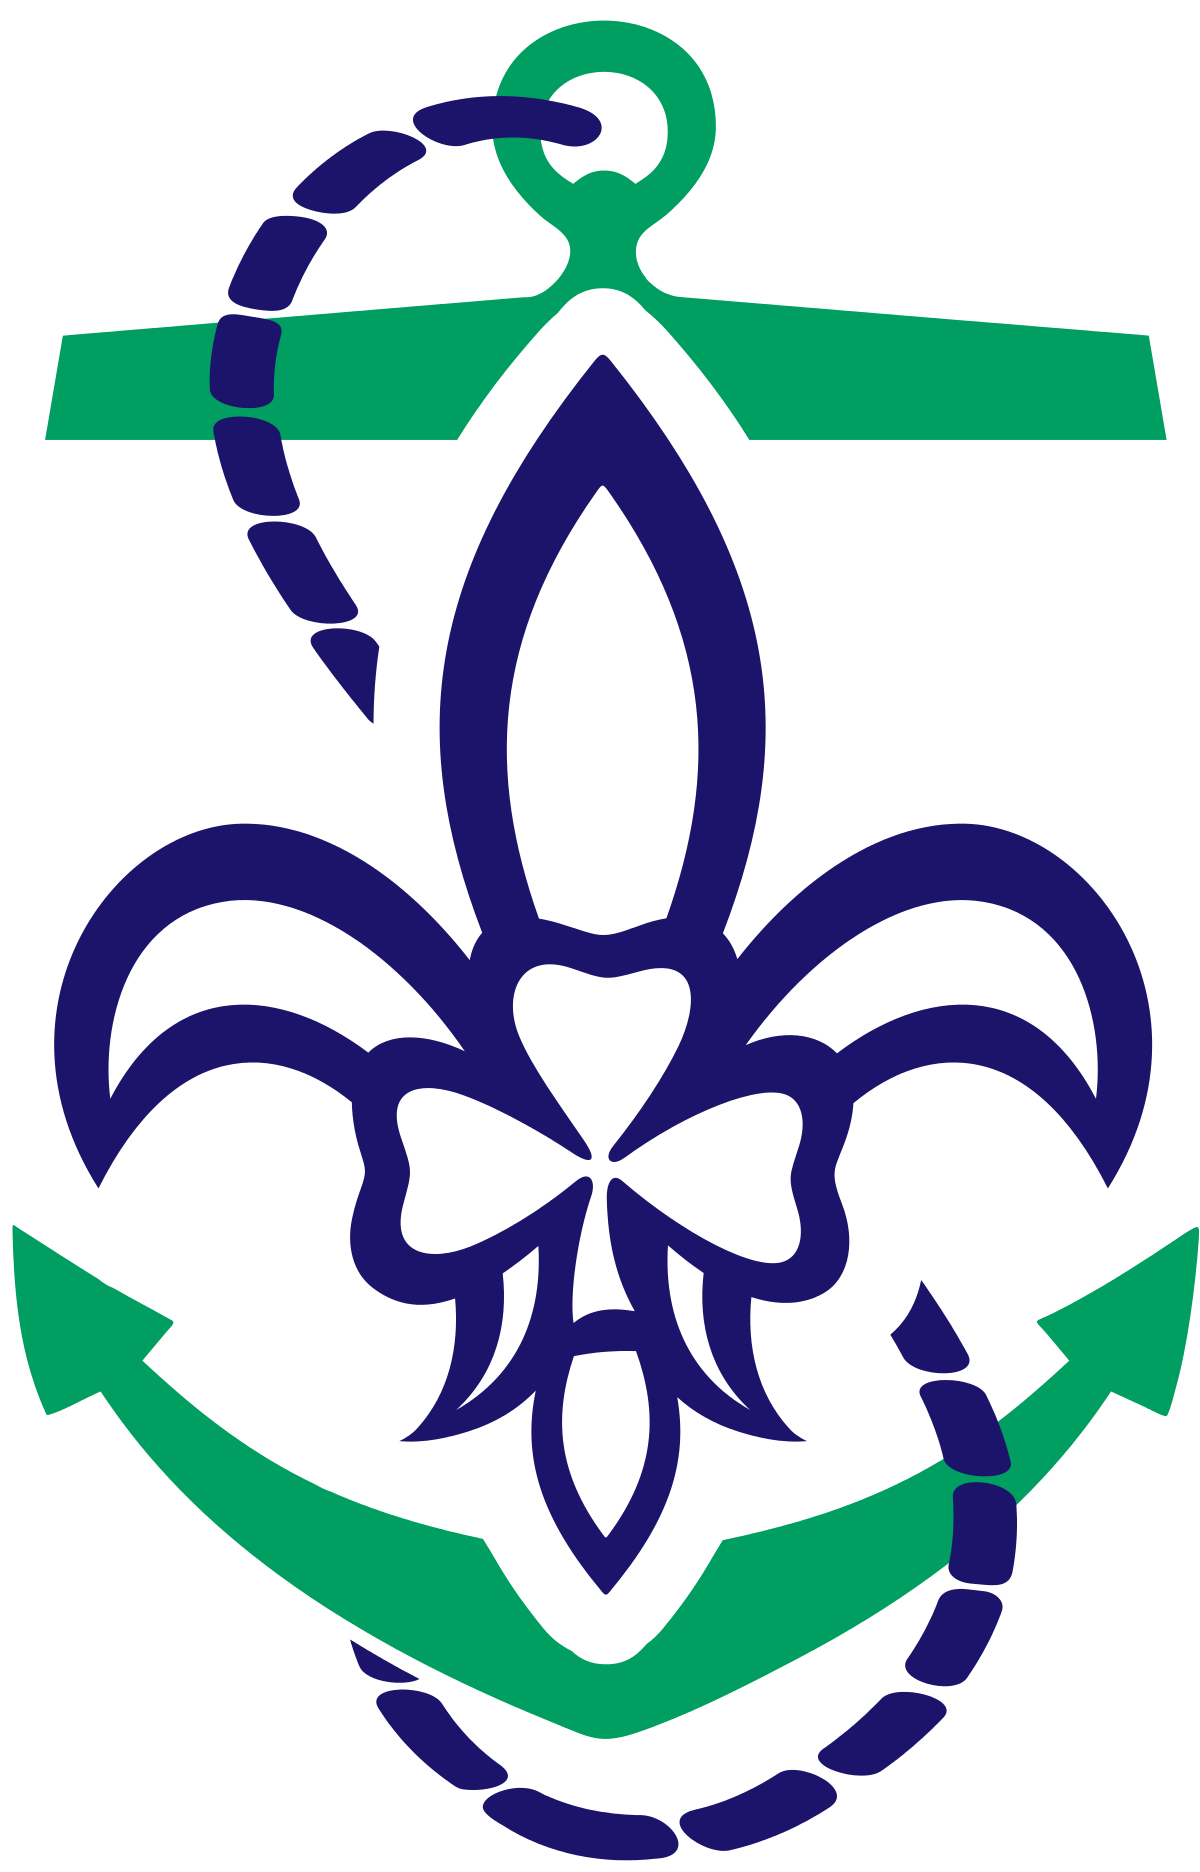 Svg 2 scout symbol. Sea scouts scouting ireland